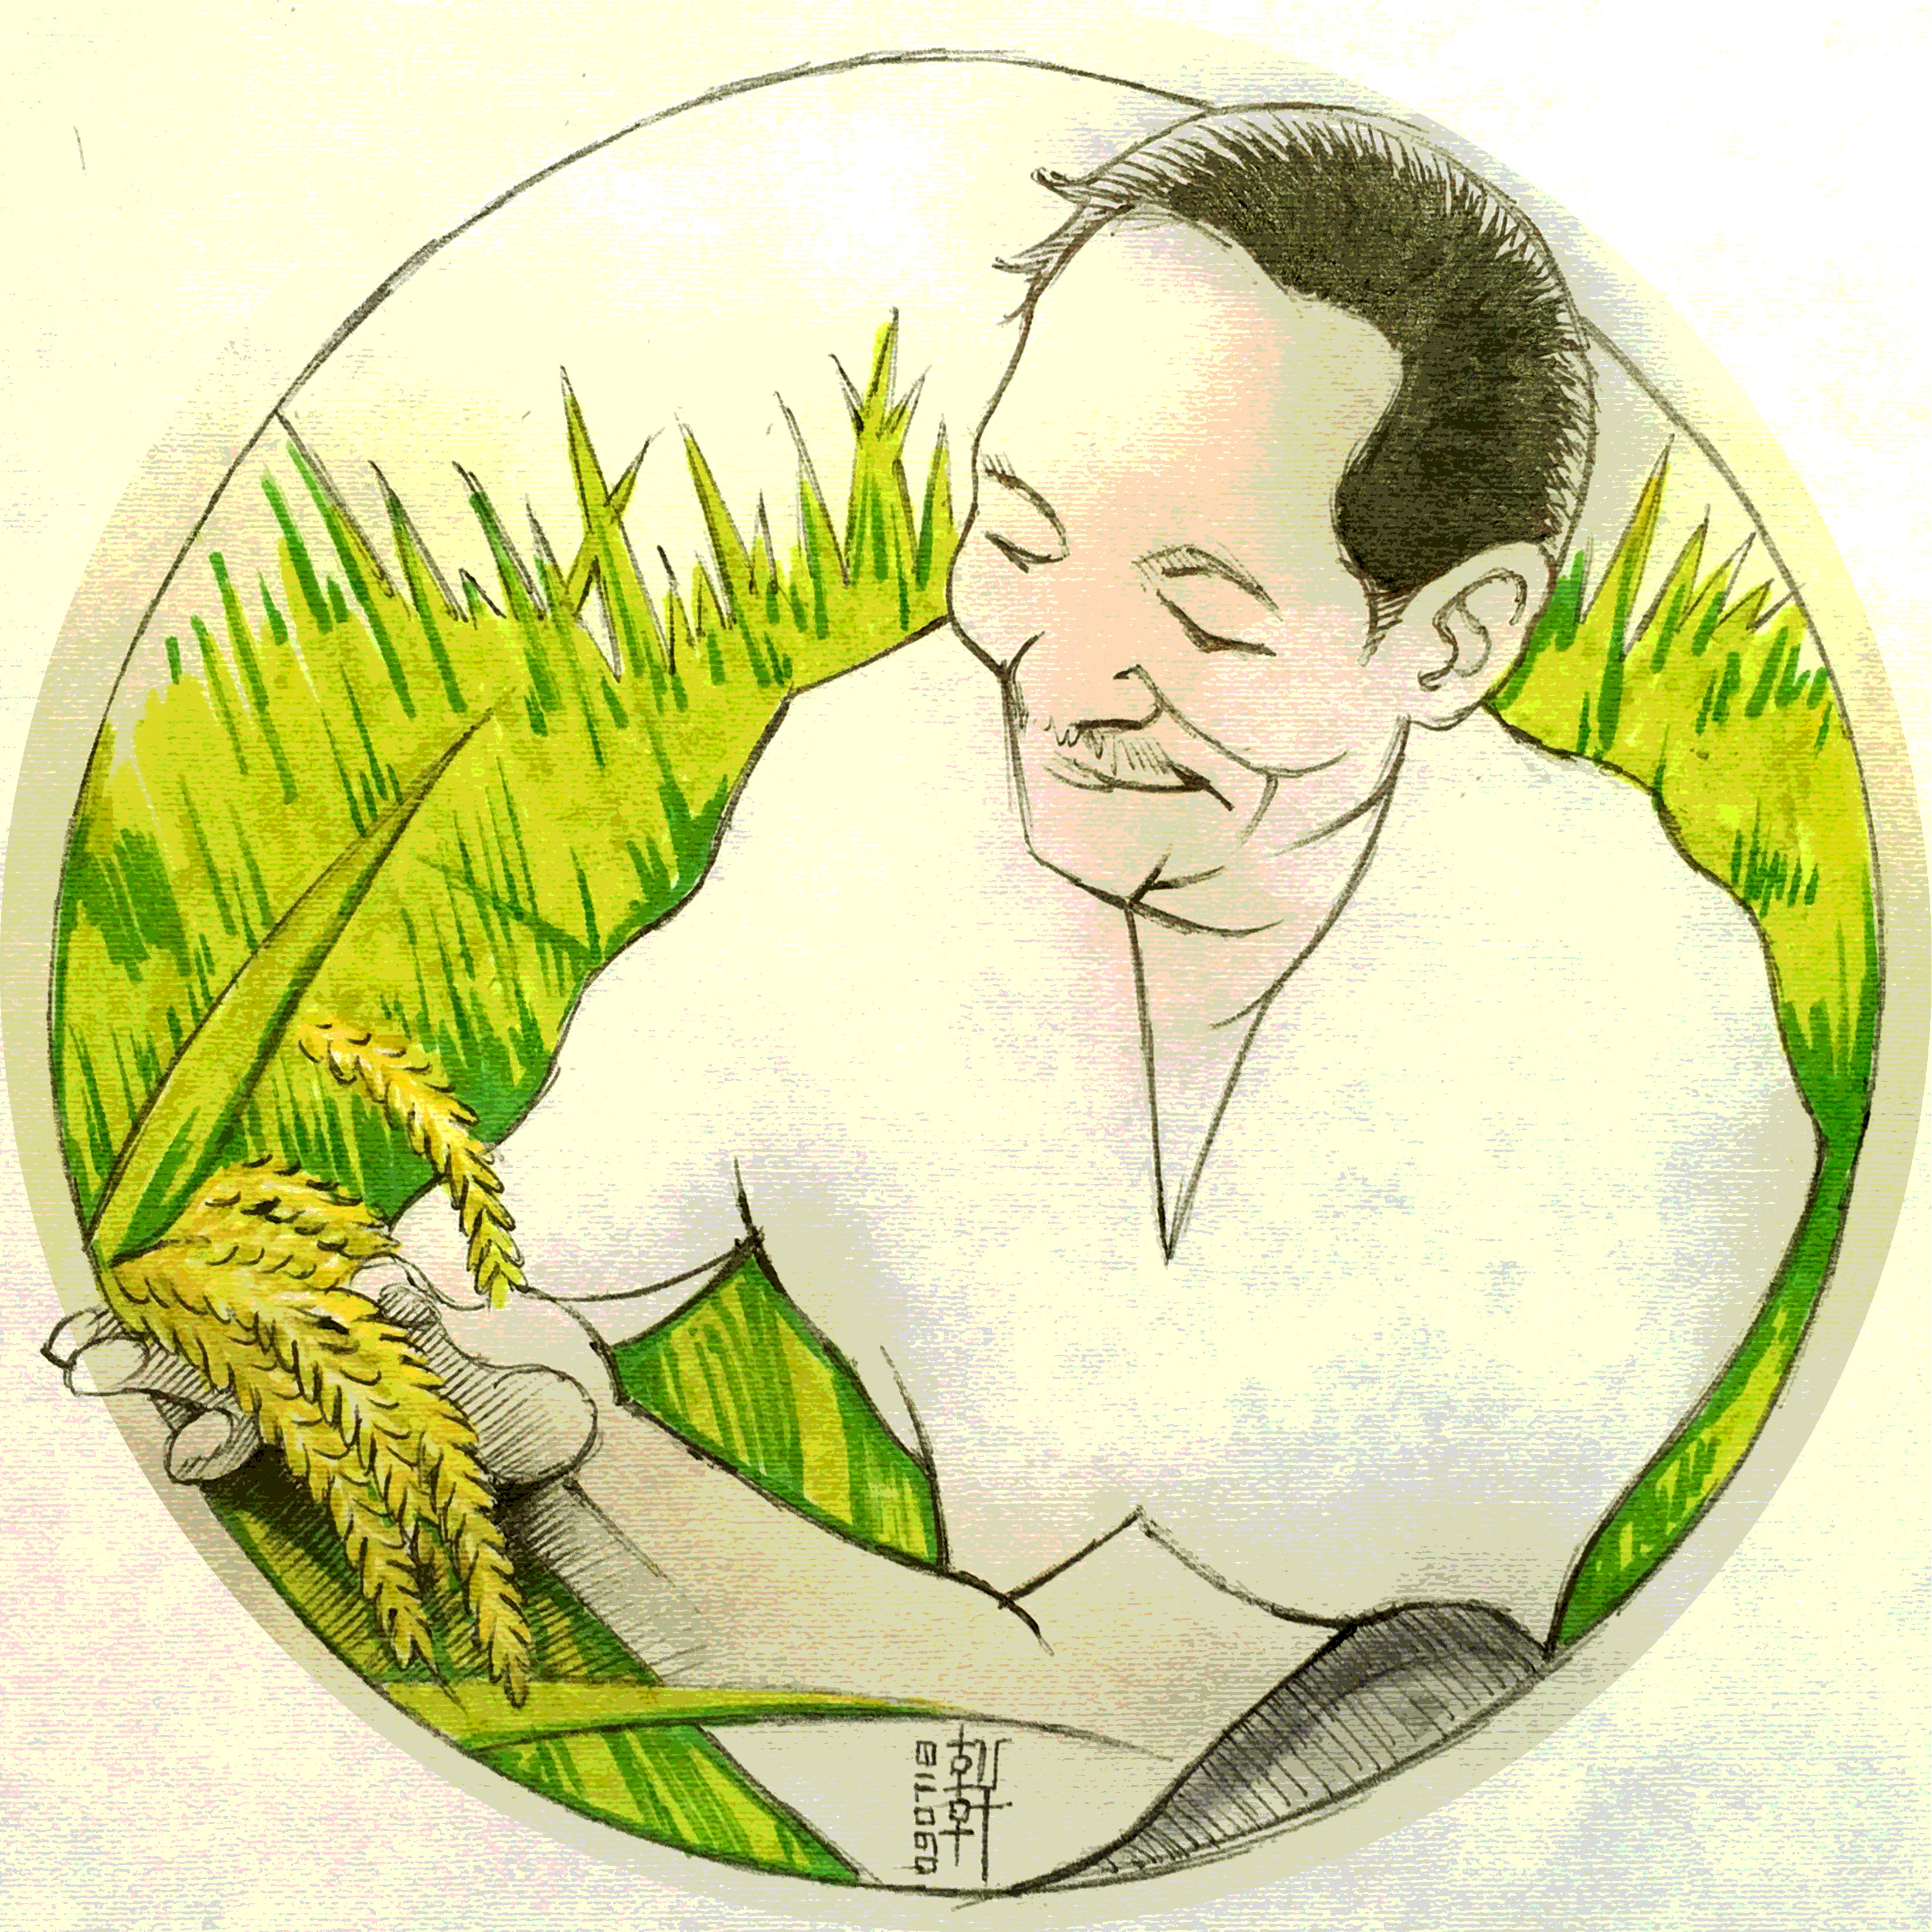 Day 09-07-18 - Father of Hybrid Rice